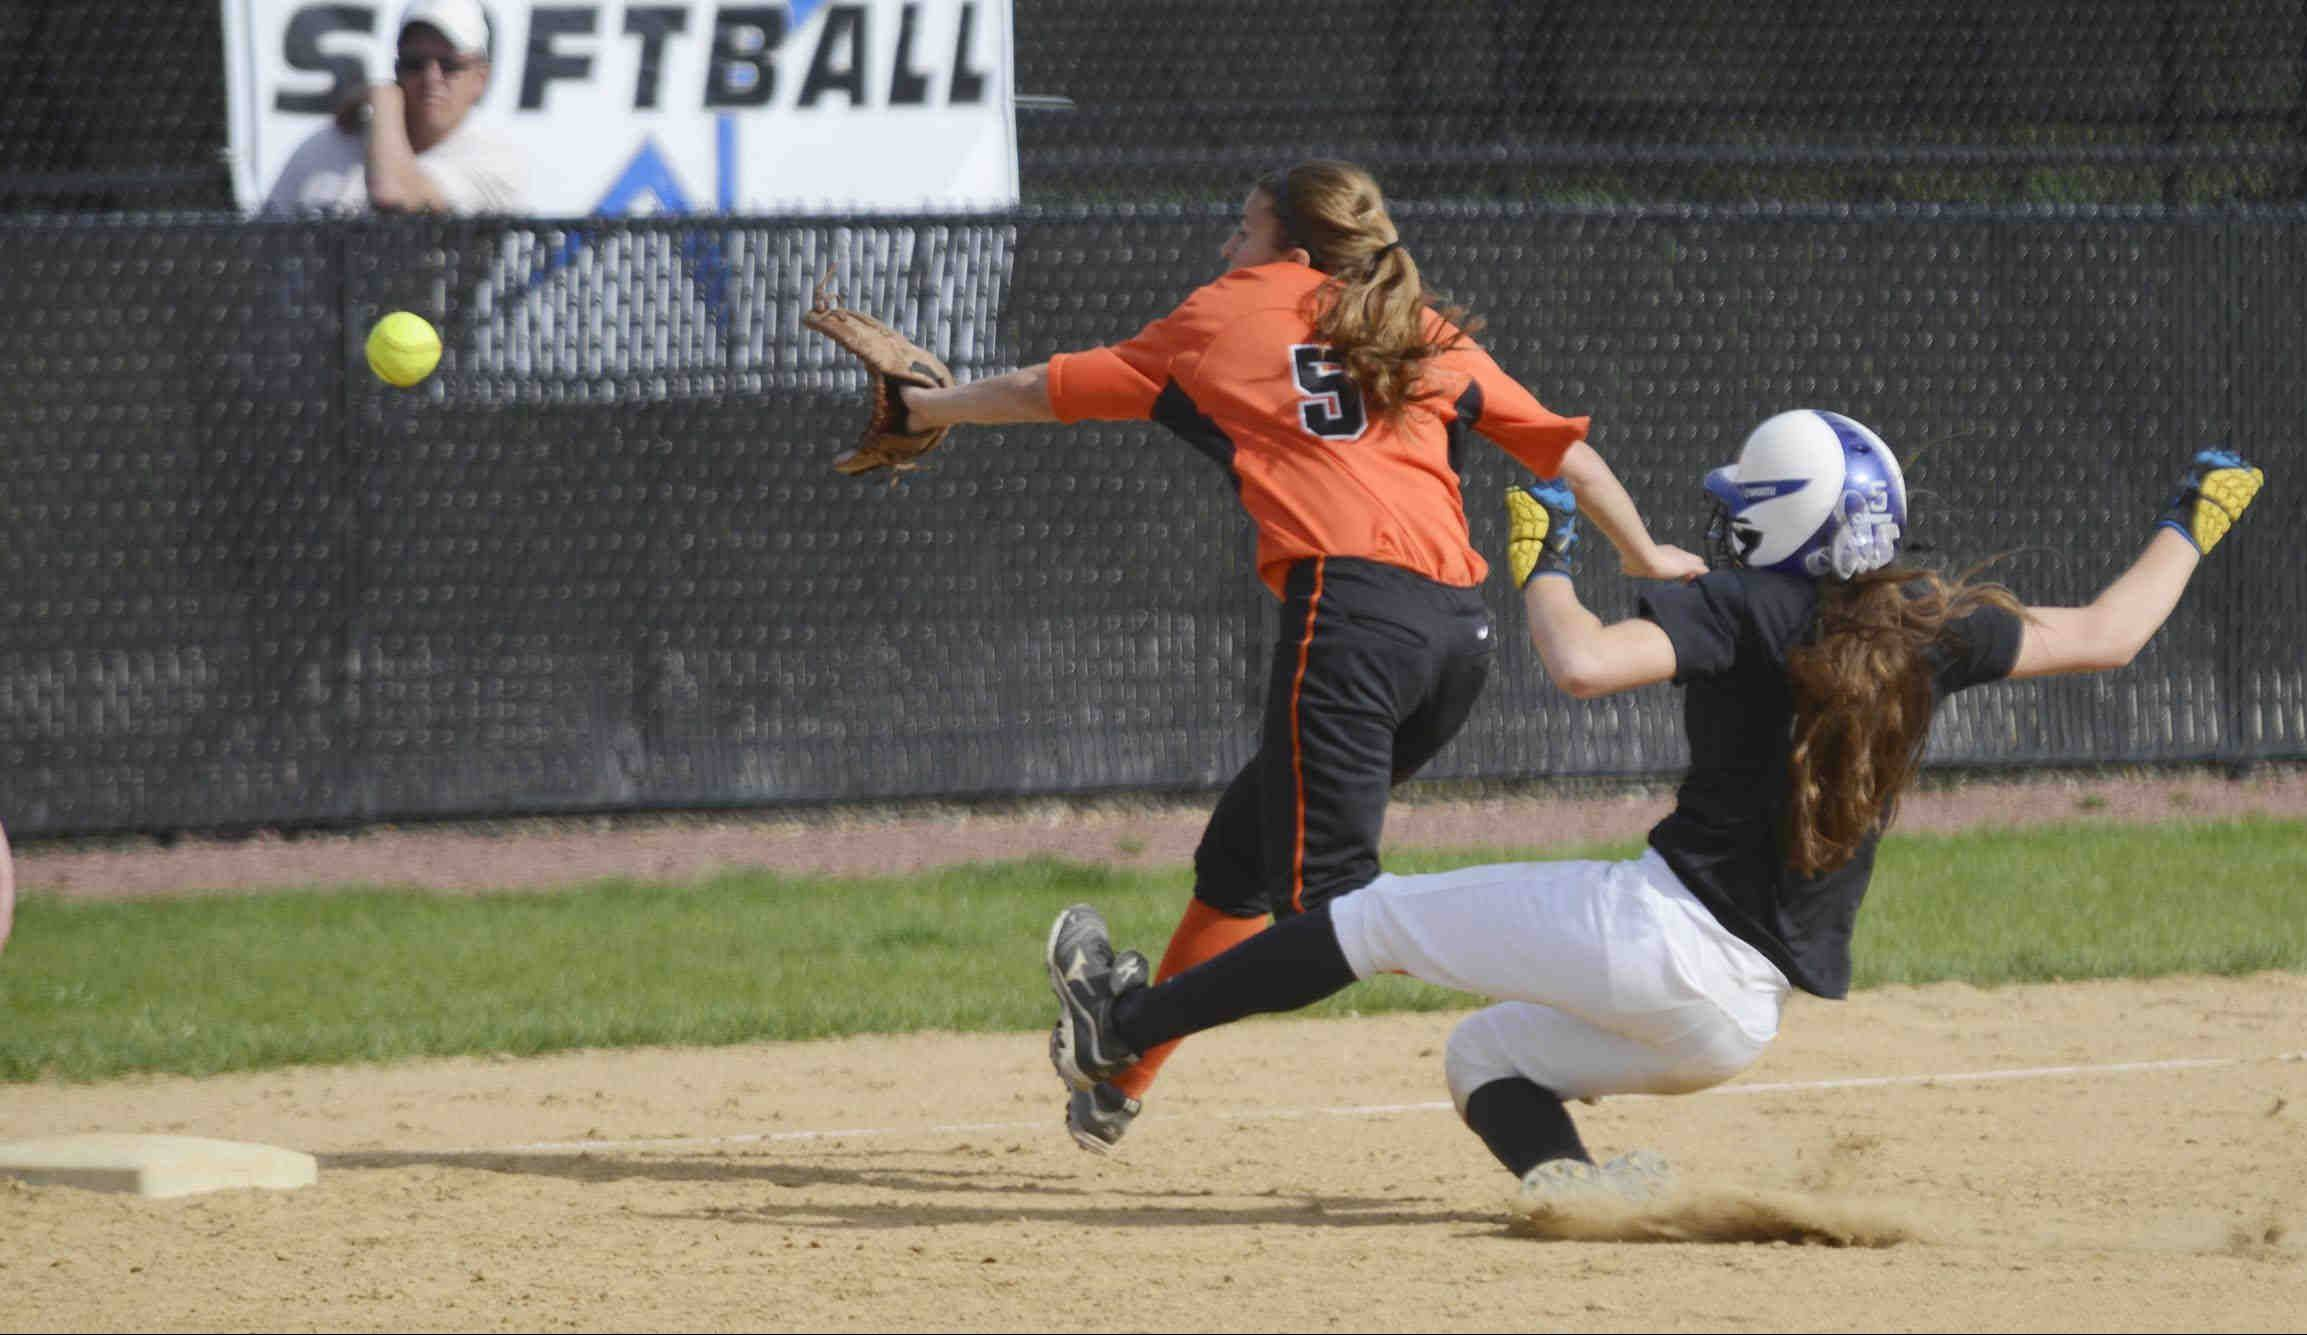 St. Charles North's Sabrina Rabin steals third base after stealing second in the first inning as St. Charles East's Alexis Perez reaches for the throw. Rabin stole four bases in the North Stars' 10-0 victory.